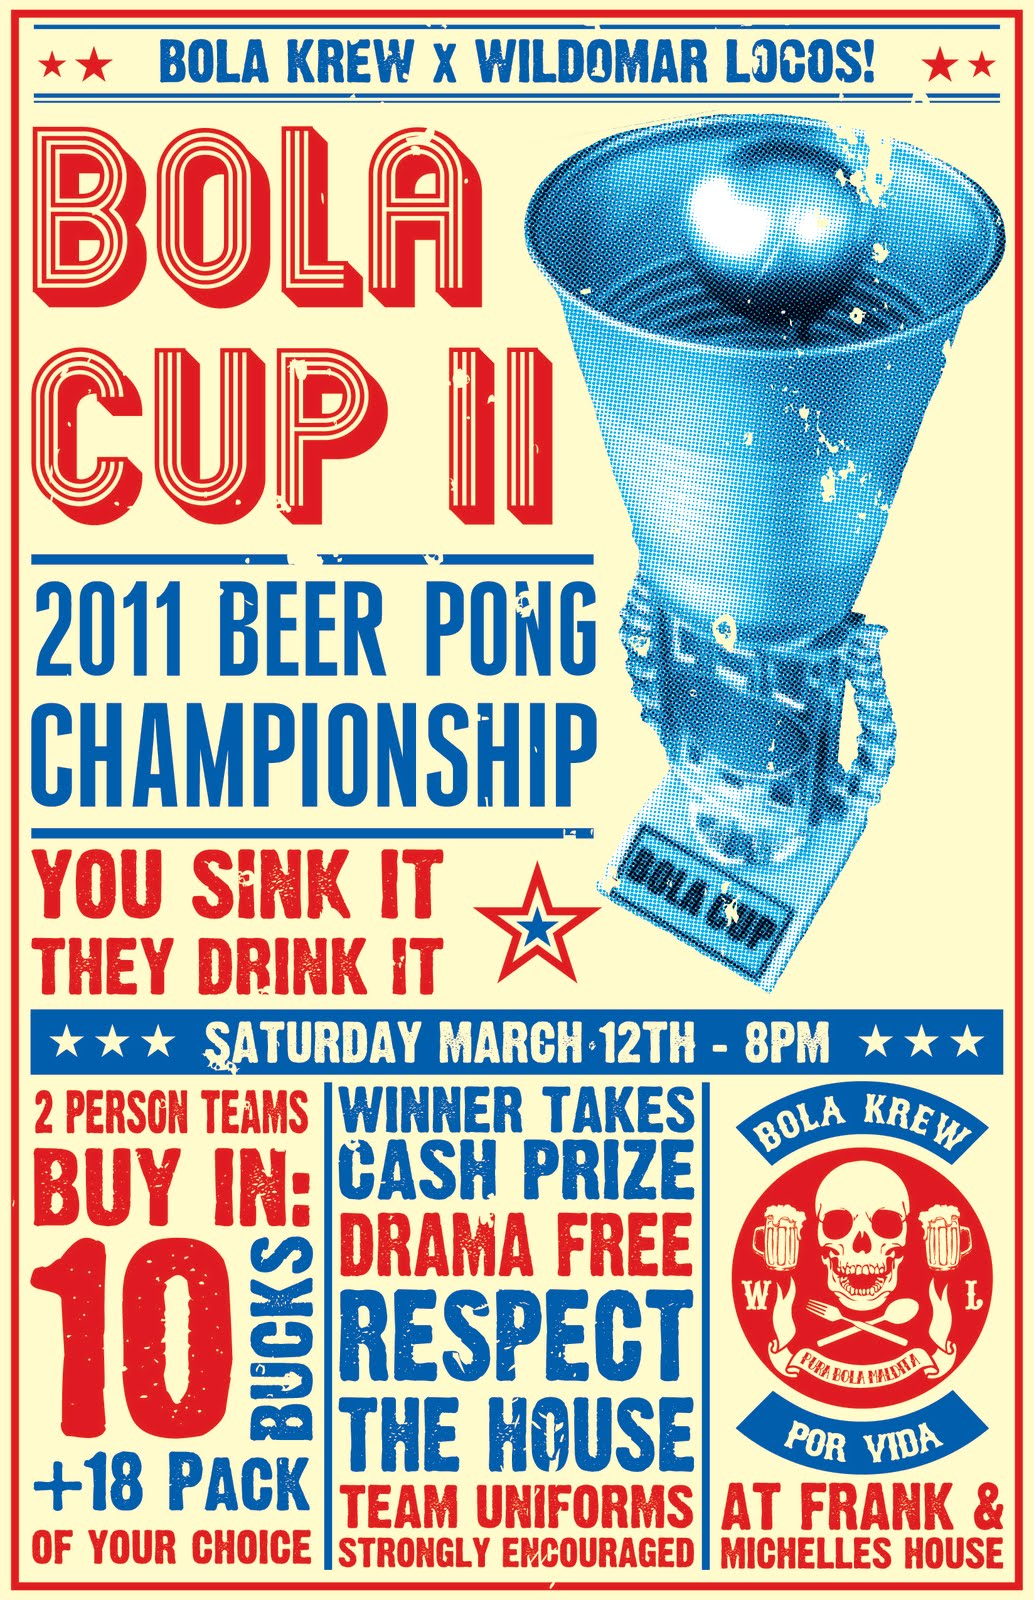 an overview of the rules of beer pong